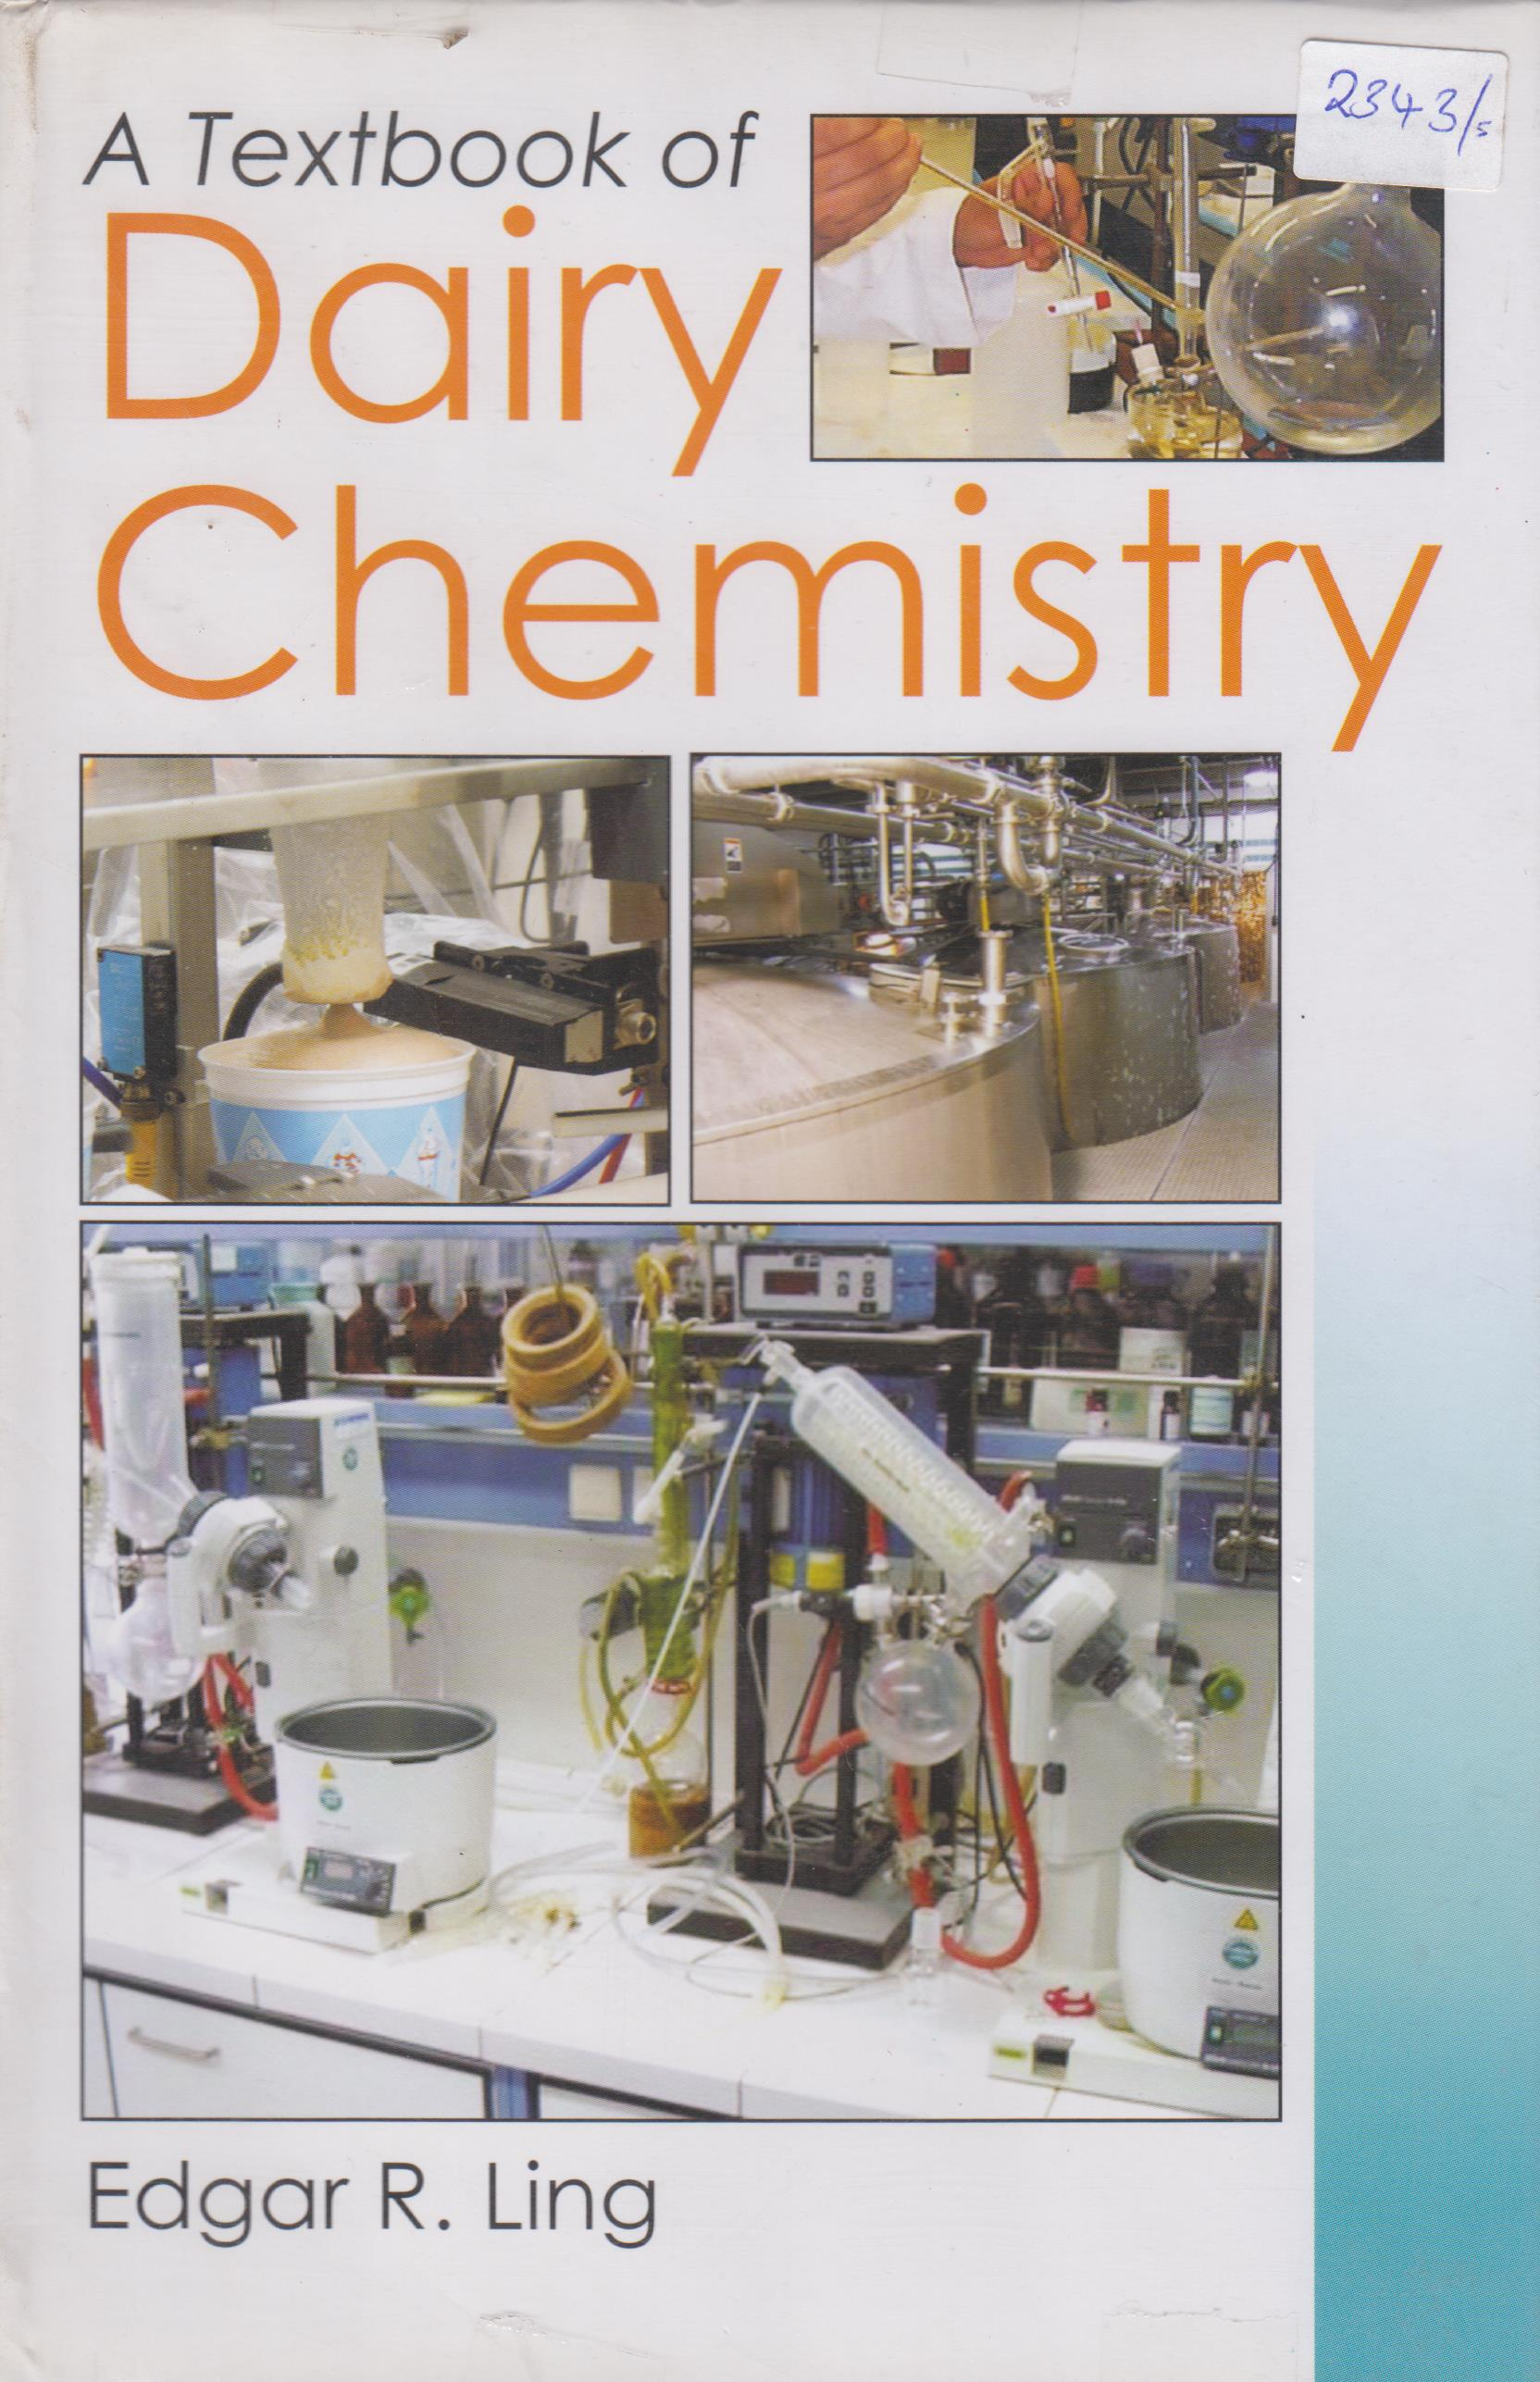 A Textbook of Dairy Chemistry | Books, Stationery, Computers, Laptops and  more  Buy online and get free delivery on orders above Ksh  2,000  Much  more